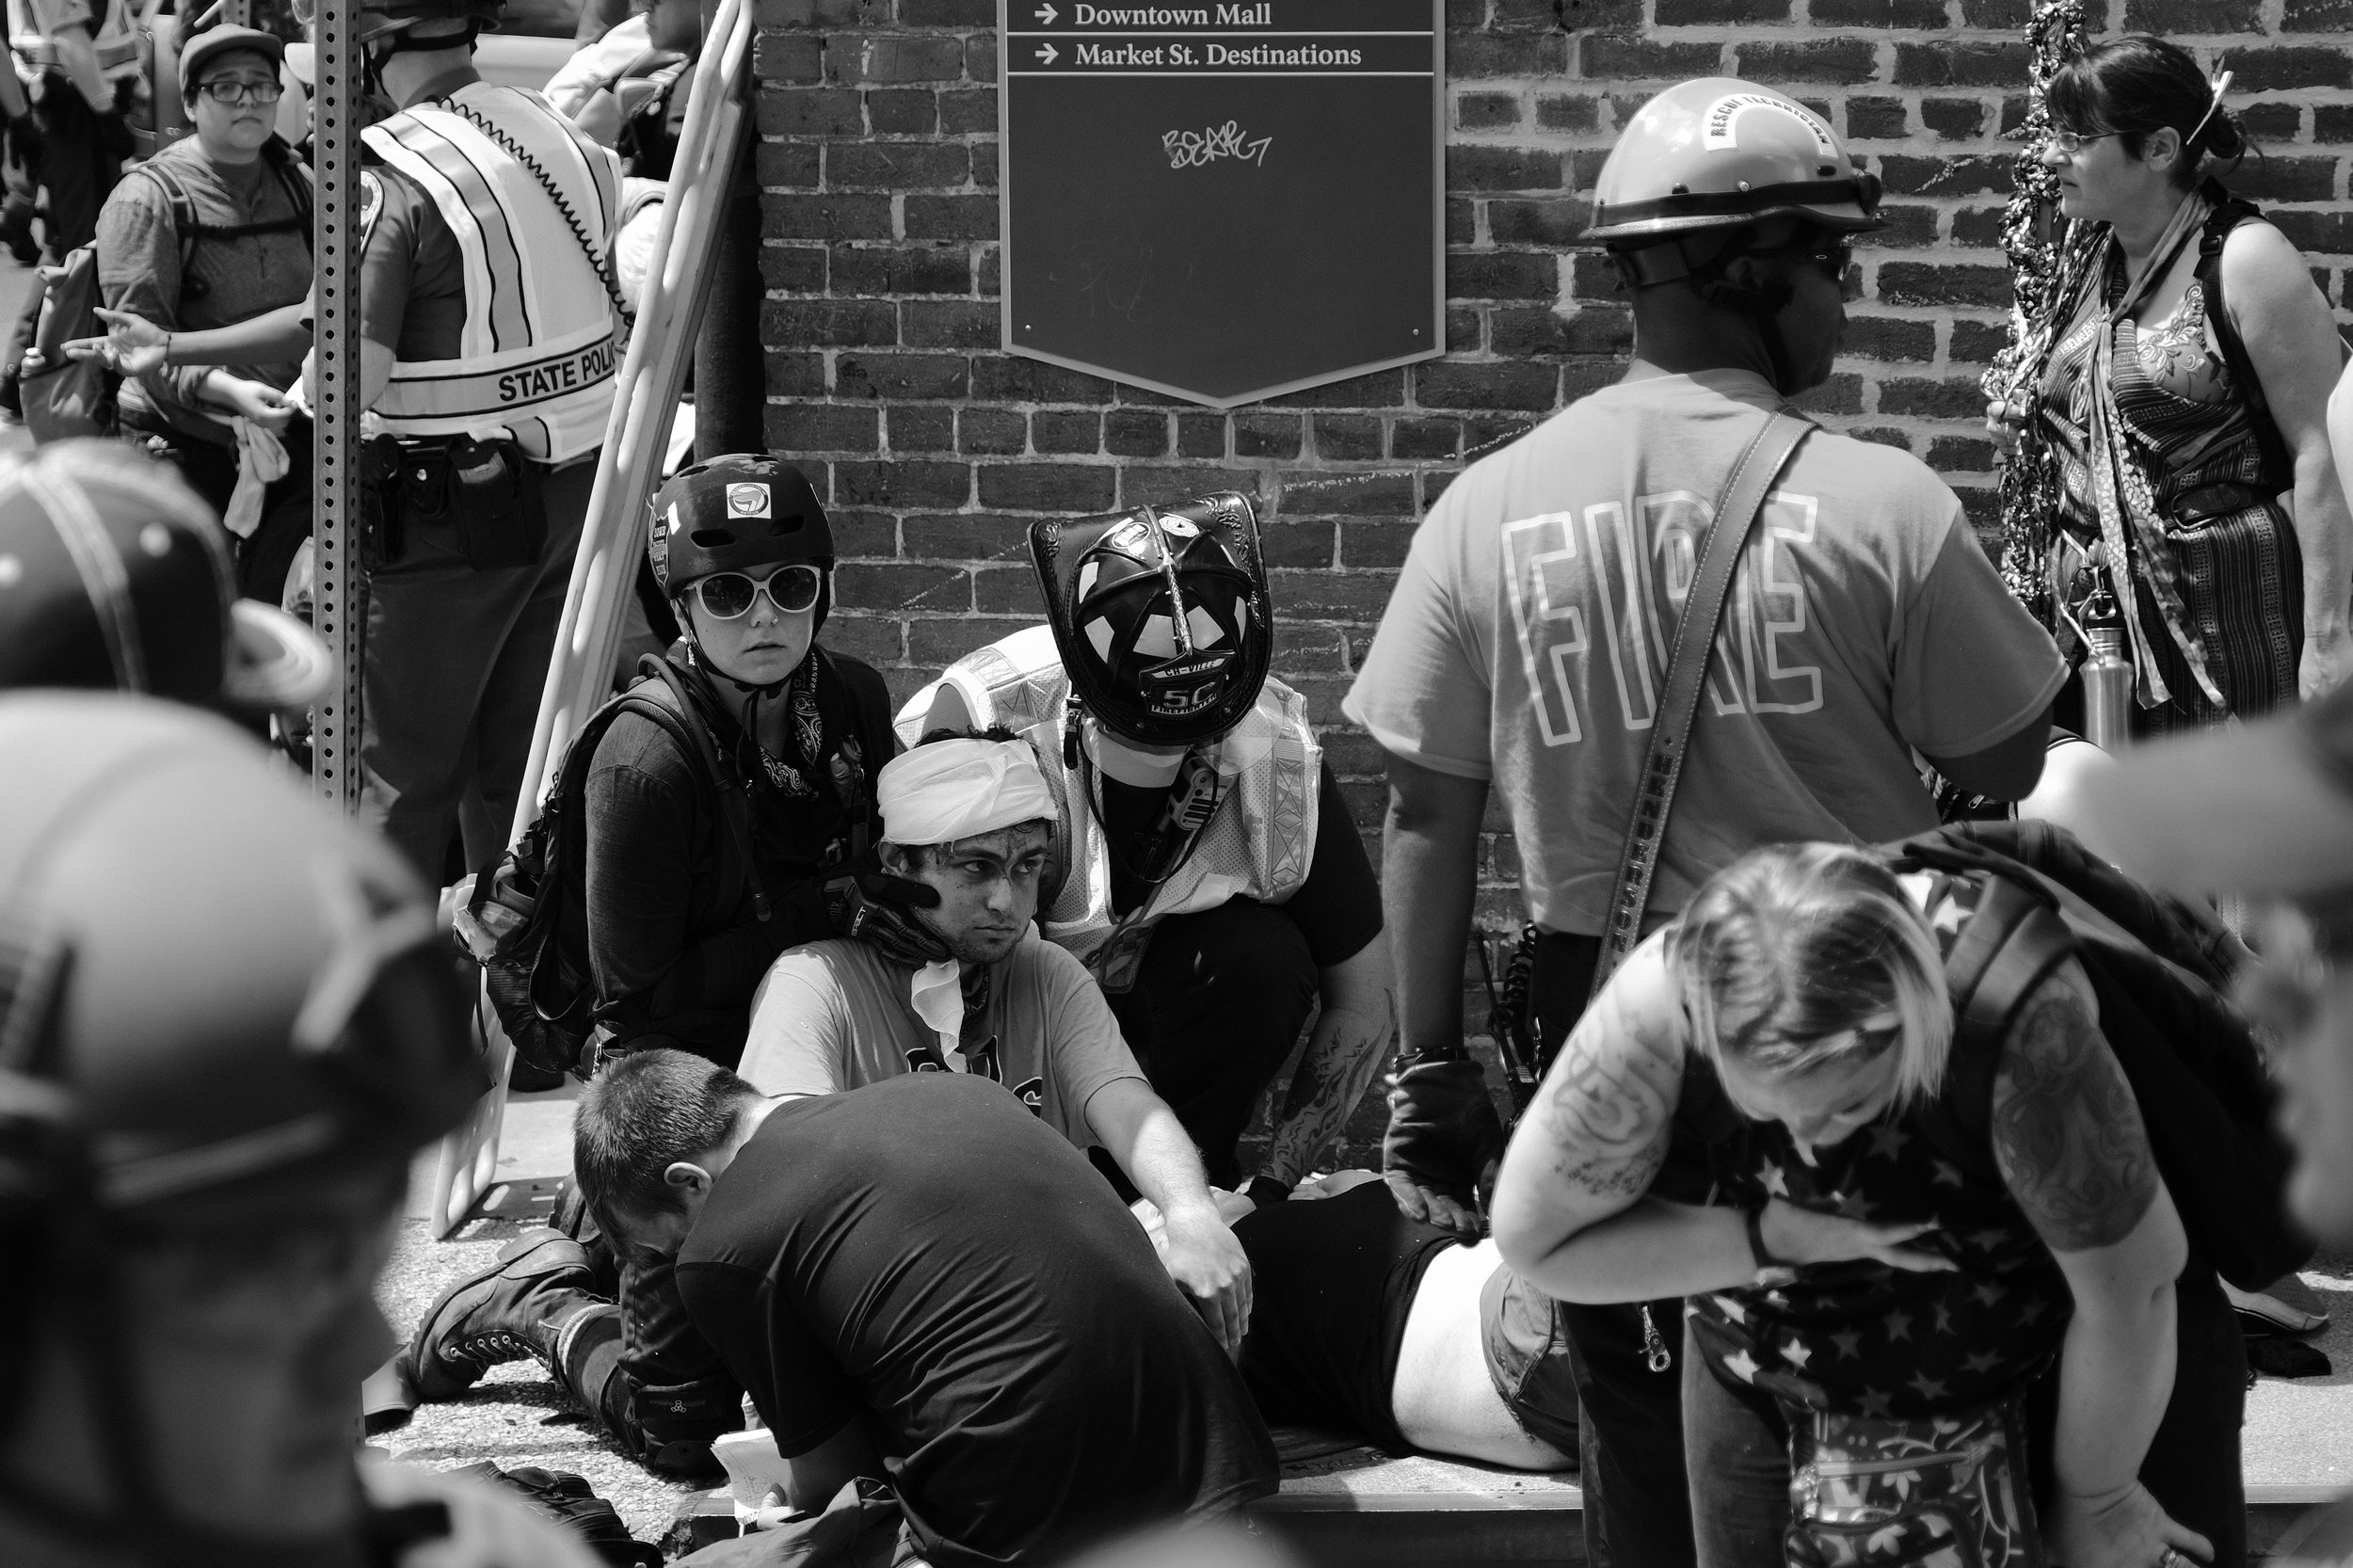 At approximately 1:45 PM, hours after the white supremacists retreated, a car plowed through a crowd of celebrating protesters, killing Heather Heyer and injuring at least 19 others. The car was allegedly driven by James Fields who was arrested and charged with second-degree murder and five other felonies associated with this terrorist attack.  Antifascist street medics acted immediately, being closer than Charlottesville first responders. Without their expert medical attention at this critical time, more of the injuries sustained during this attack could have proven fatal.